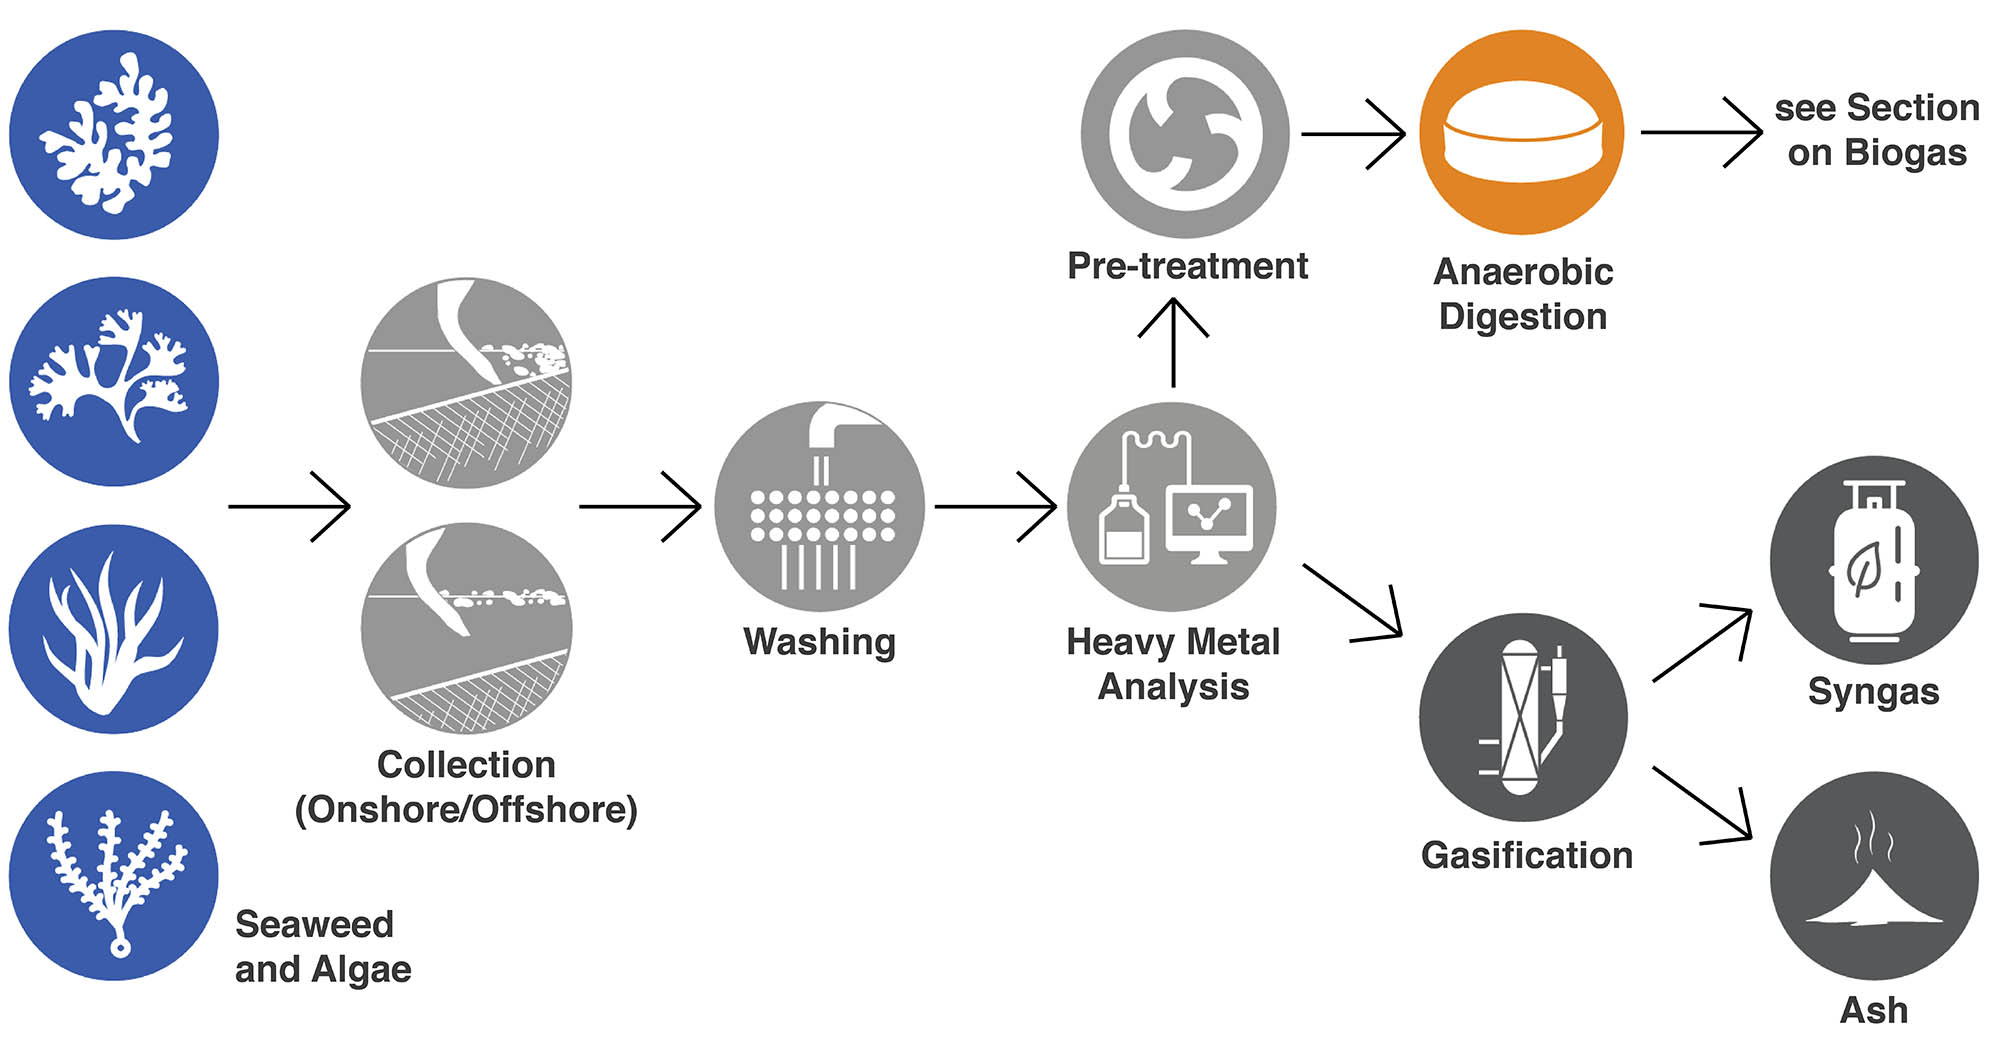 The image shows the process of collecting, cleaning and utilising seaweed for energy.